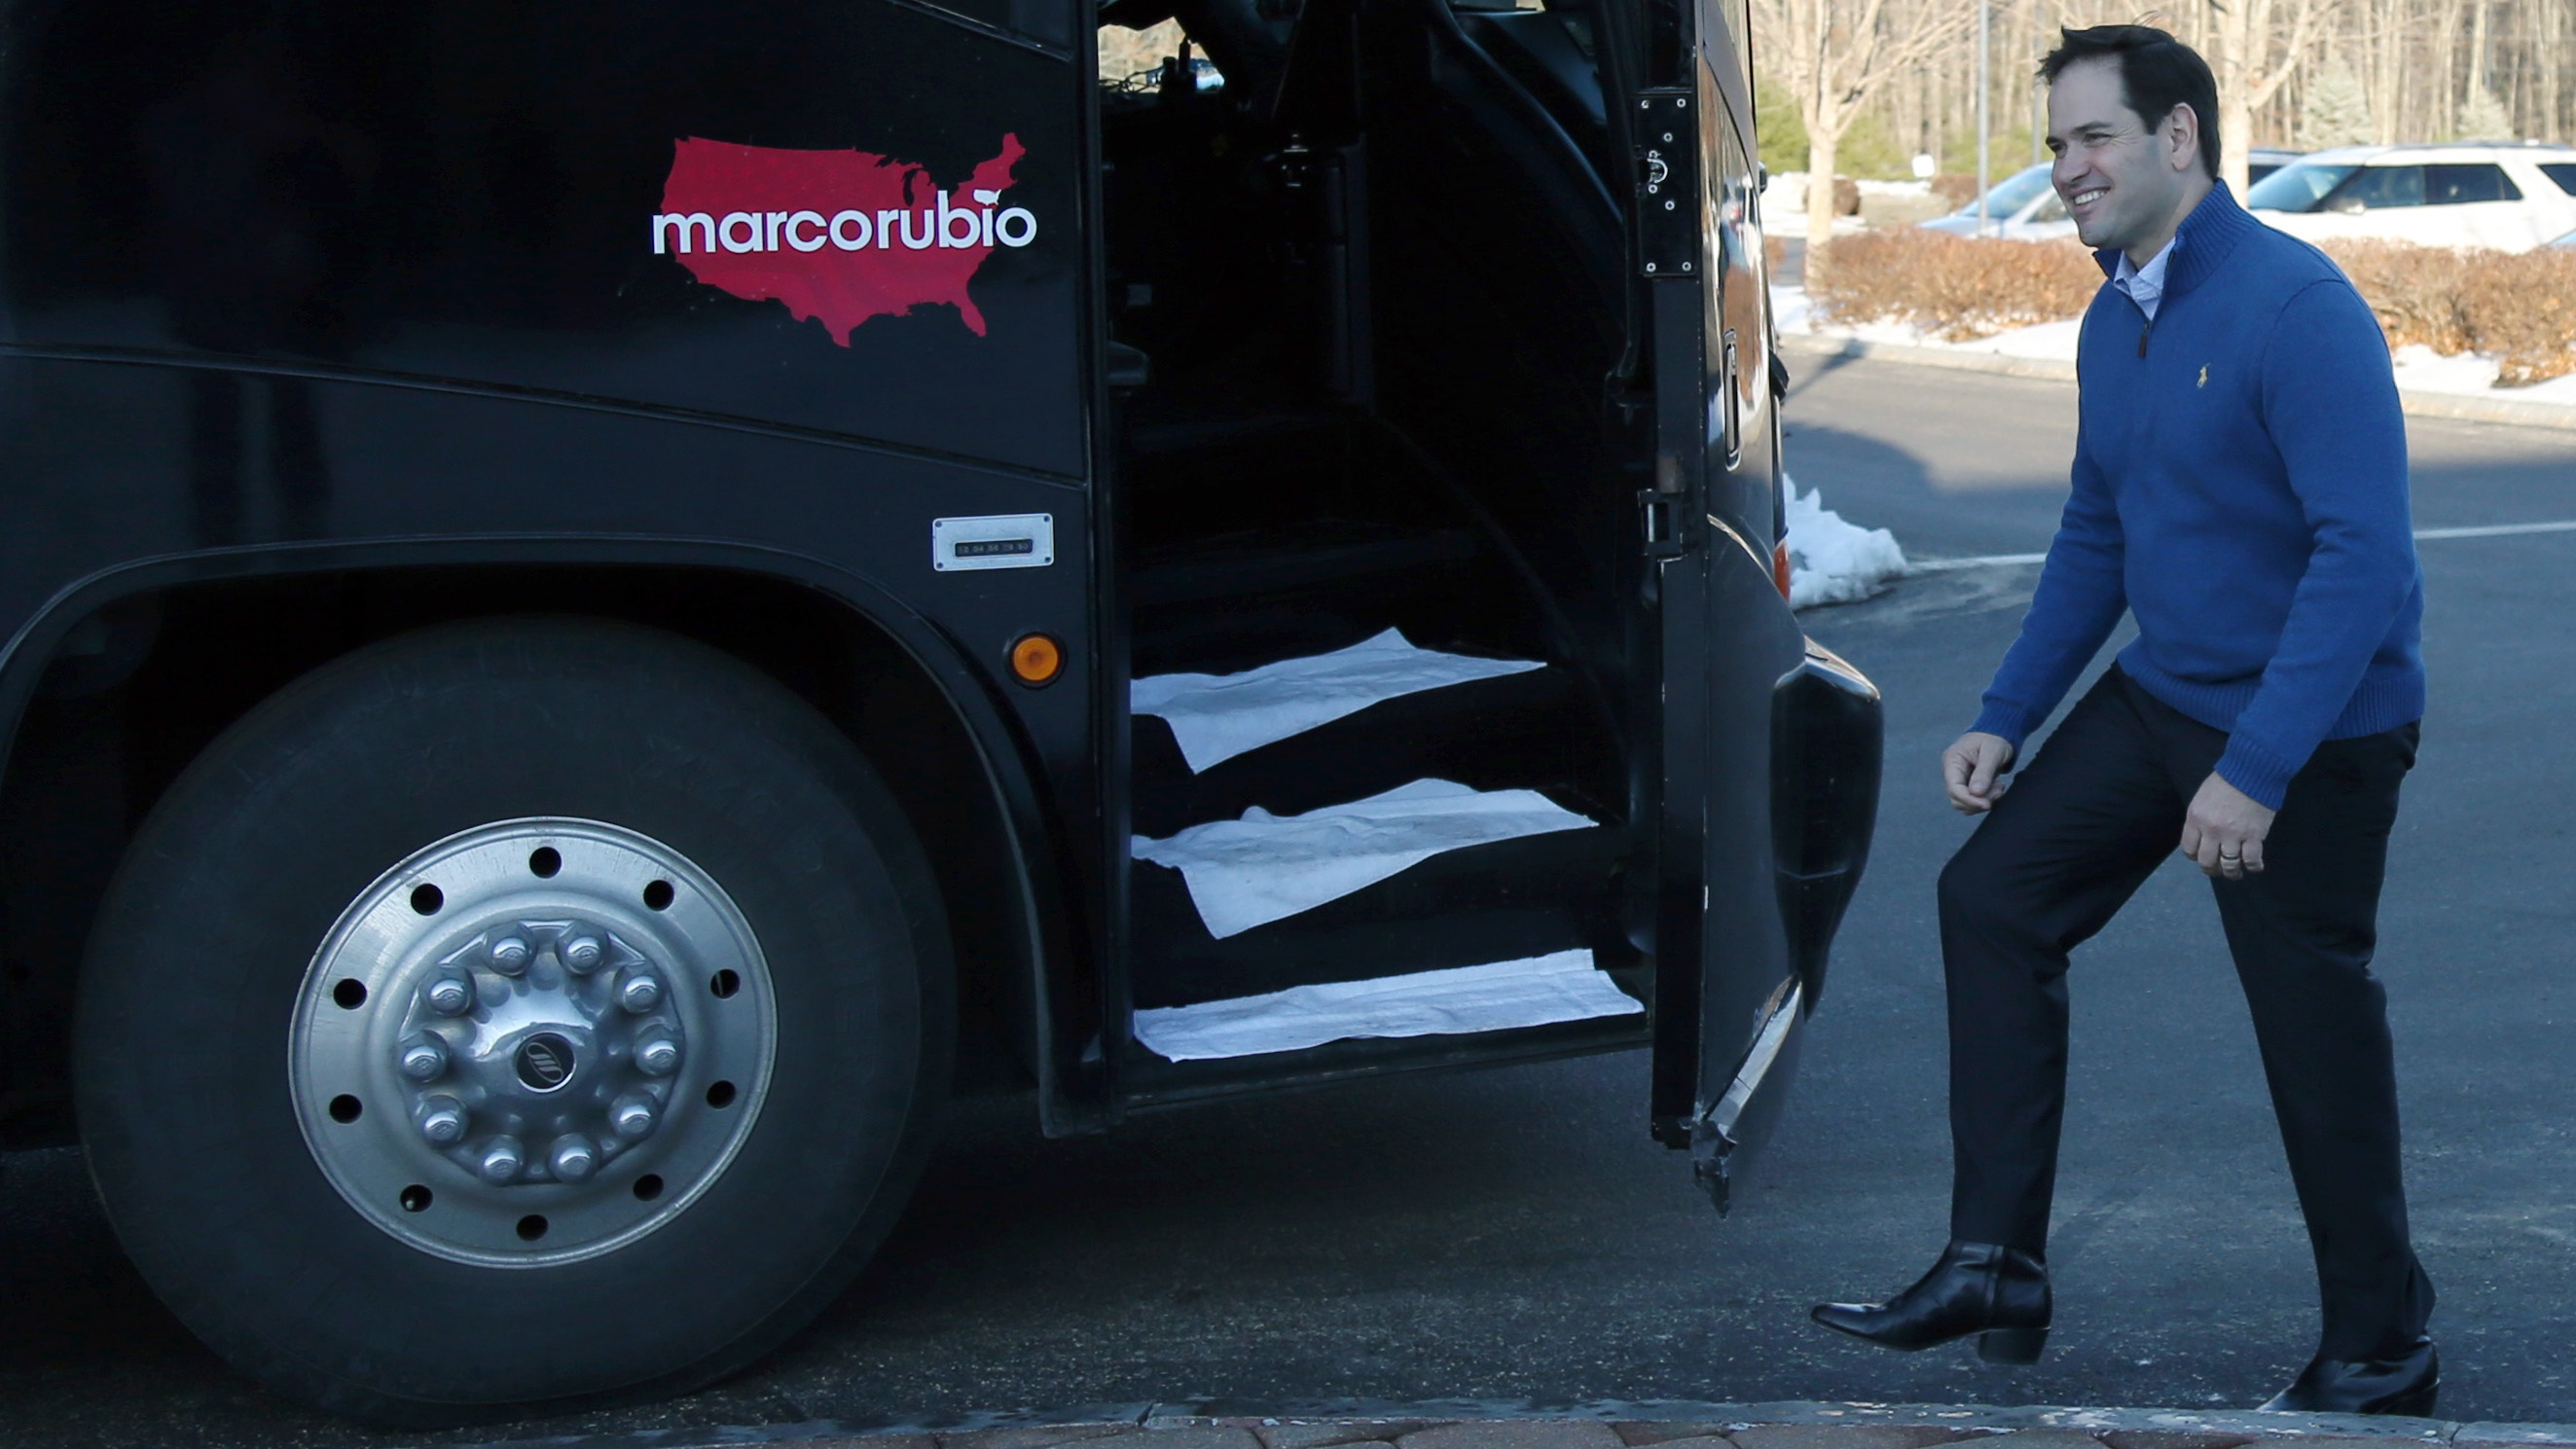 Republican presidential candidate Sen. Marco Rubio, R-Fla., smiles as he gets on his bus as he leaves a campaign stop, Sunday, Jan. 3, 2016, in Atkinson, N.H.